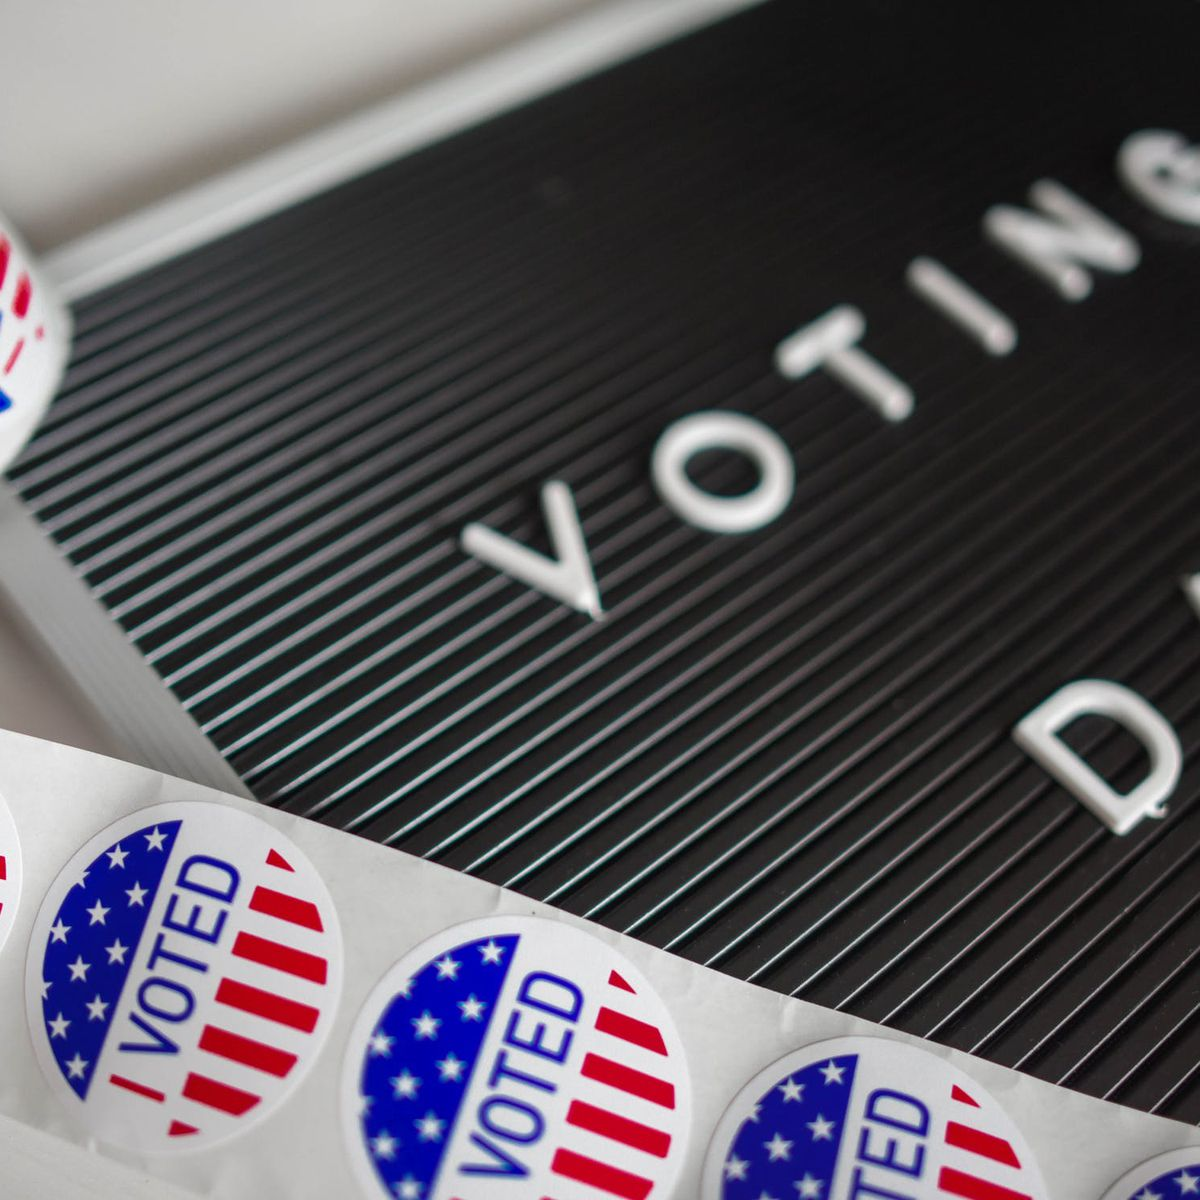 Several factors will impact Mississippi's general election